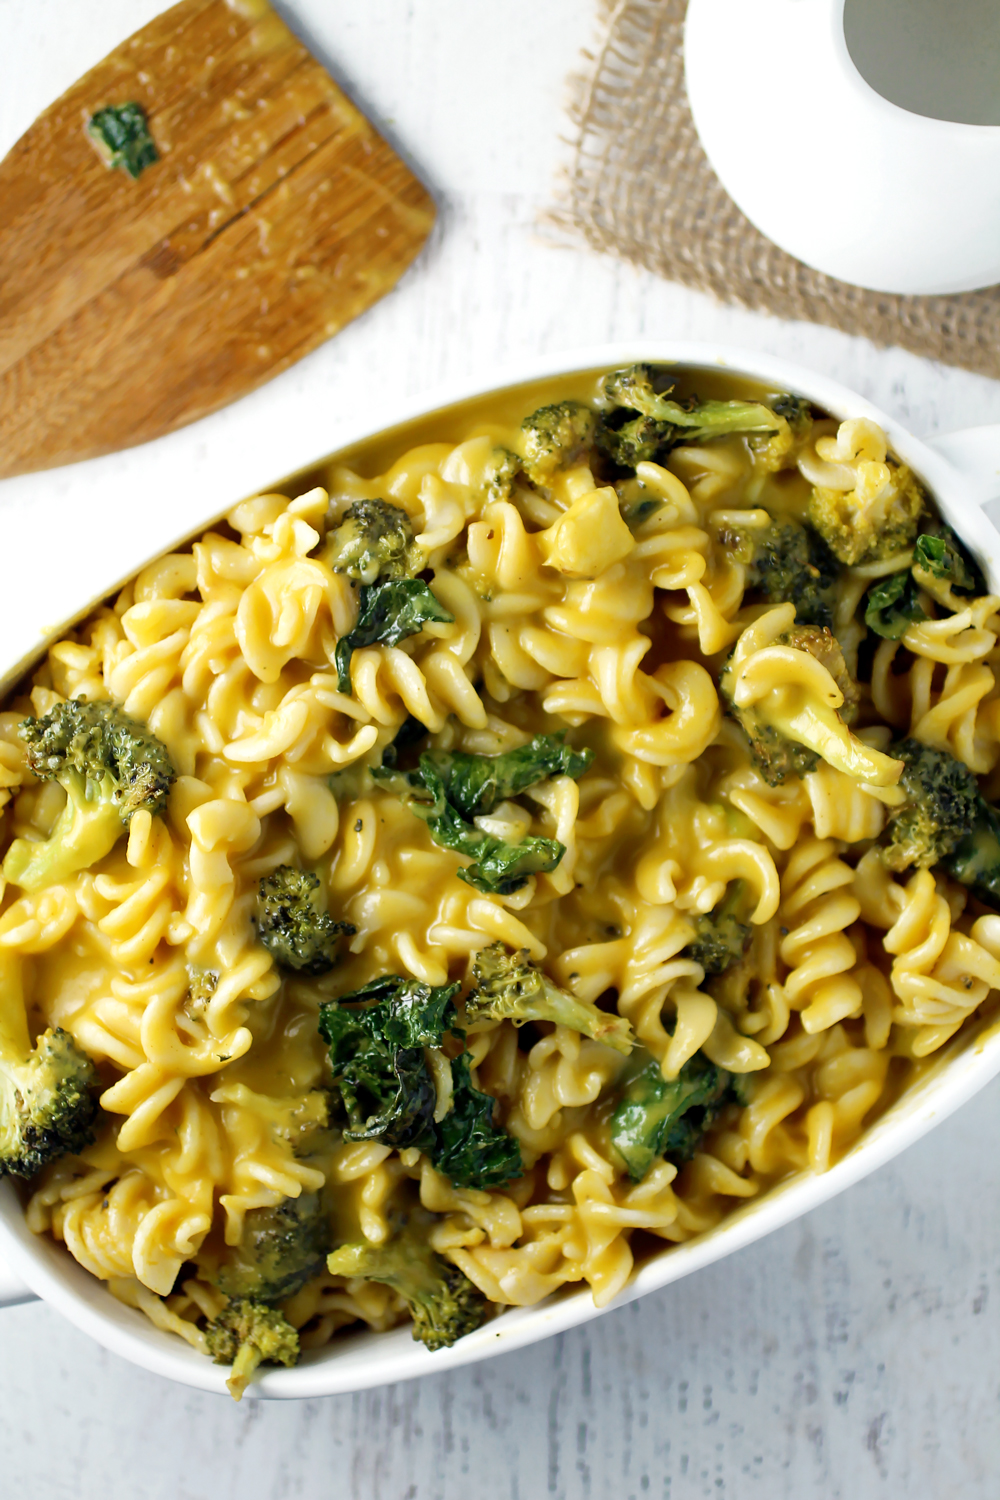 Butternut Squash Pasta with Broccoli and Kale